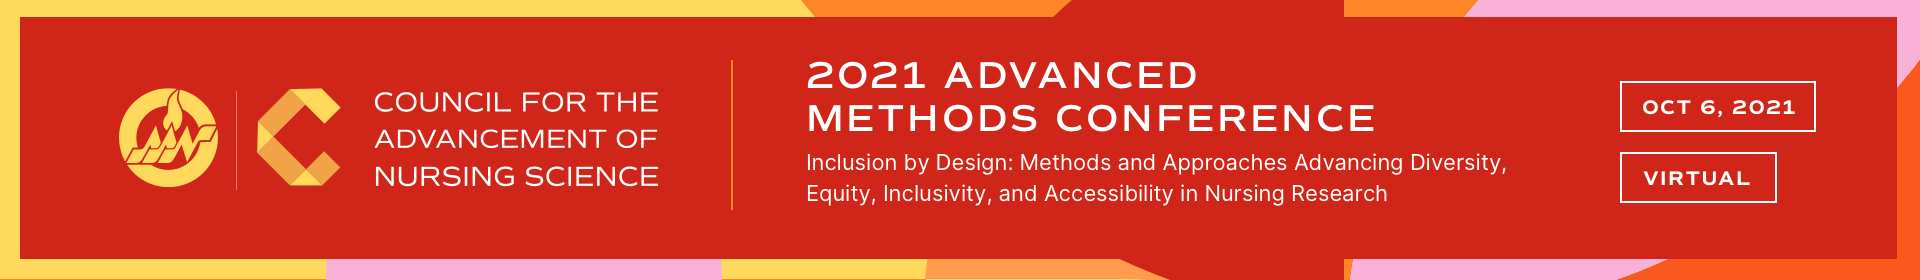 2021 Advanced Methods Virtual Conference  Event Banner